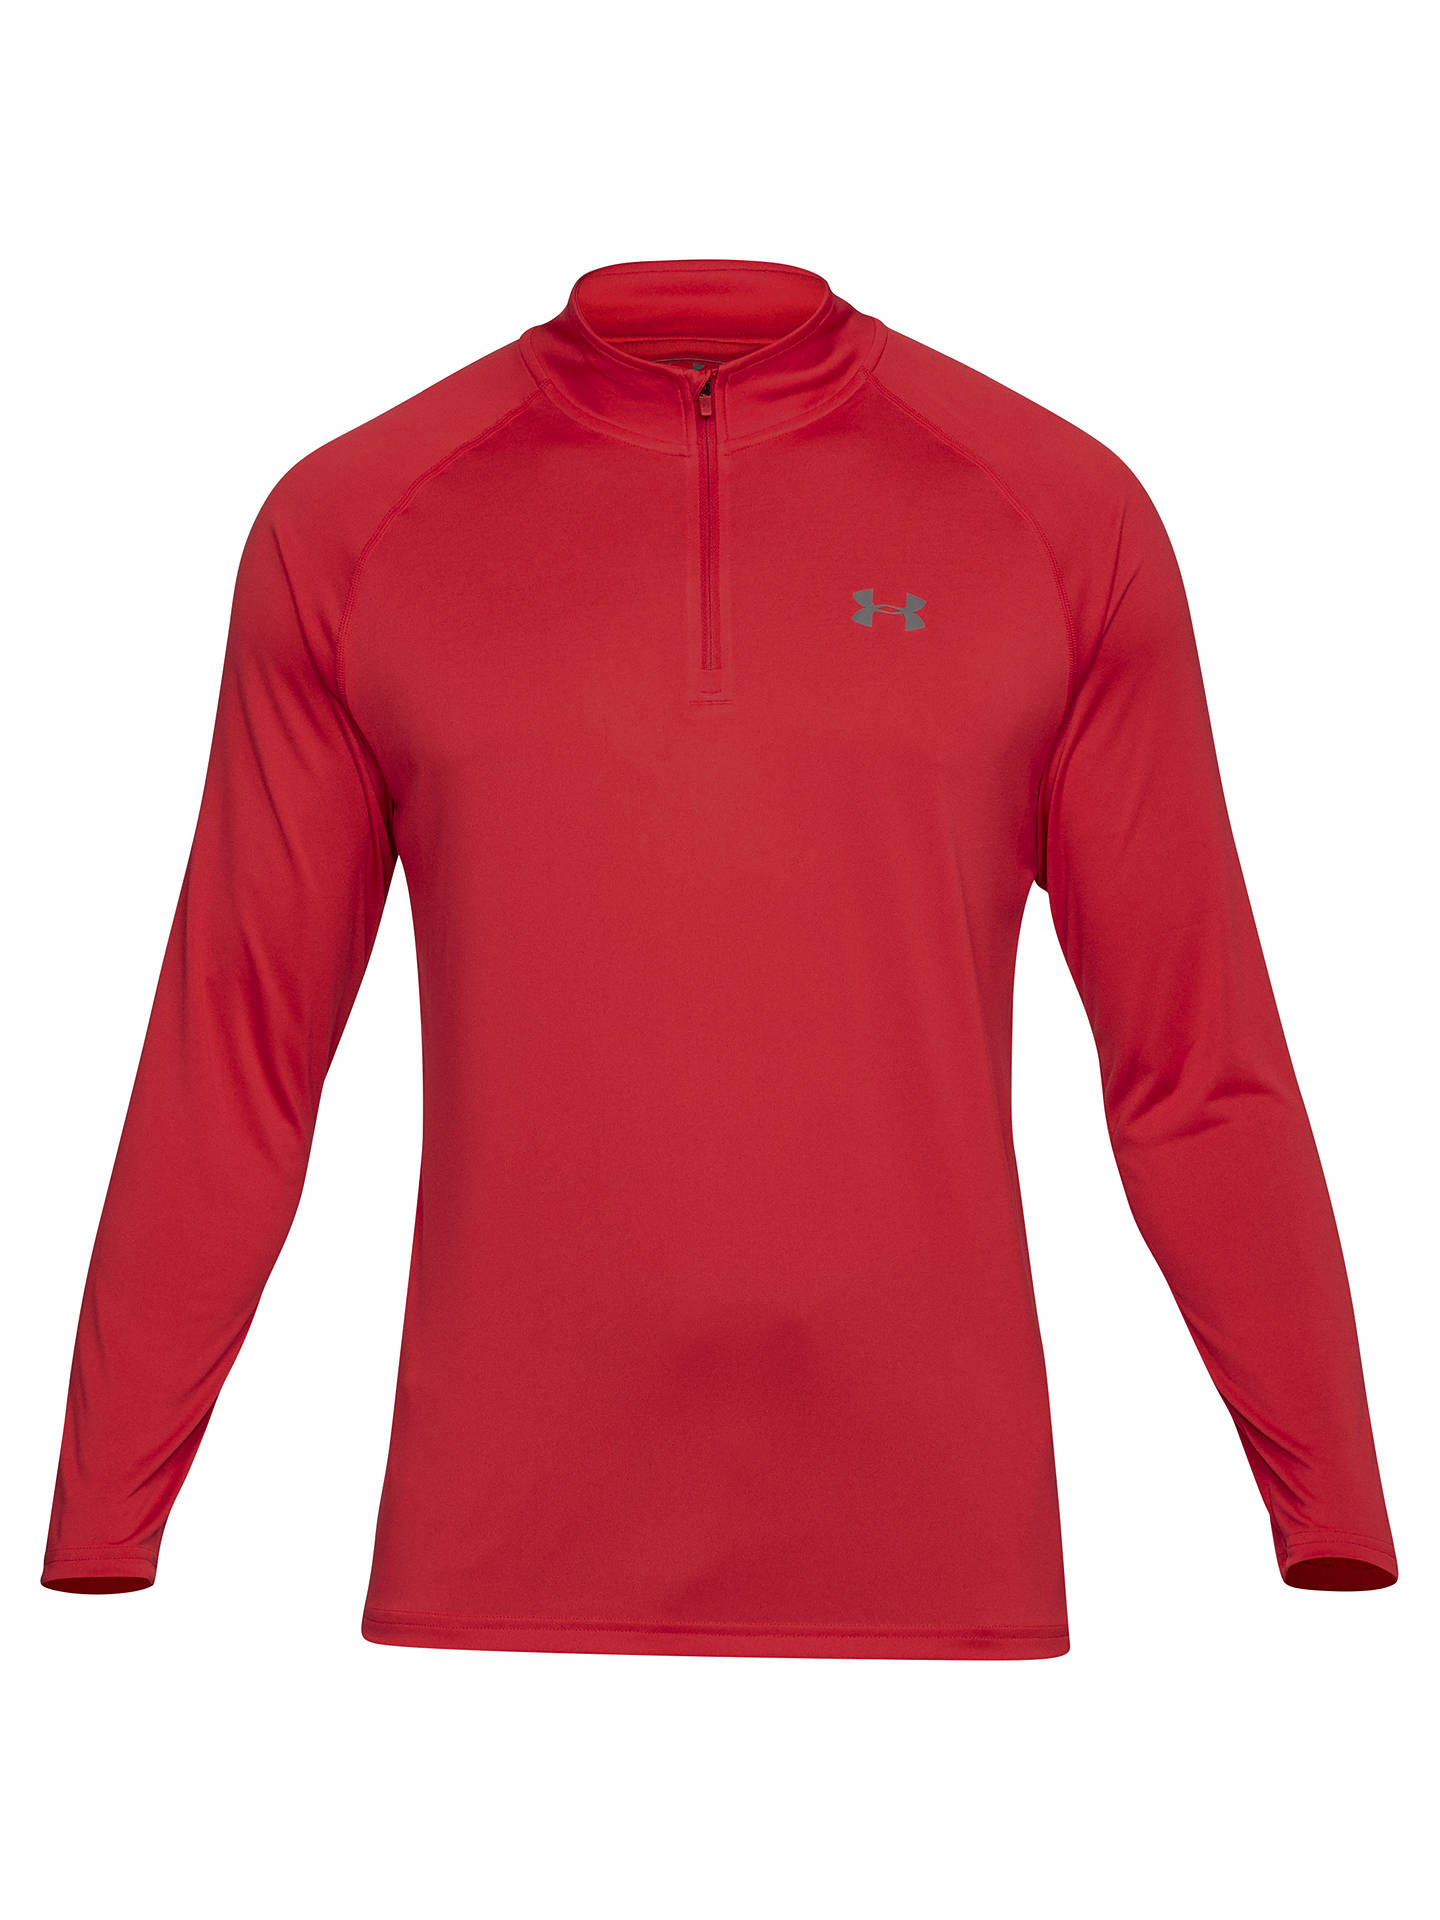 9691c4a8d Under Armour Tech 1/4 Zip Long Sleeve Top at John Lewis & Partners